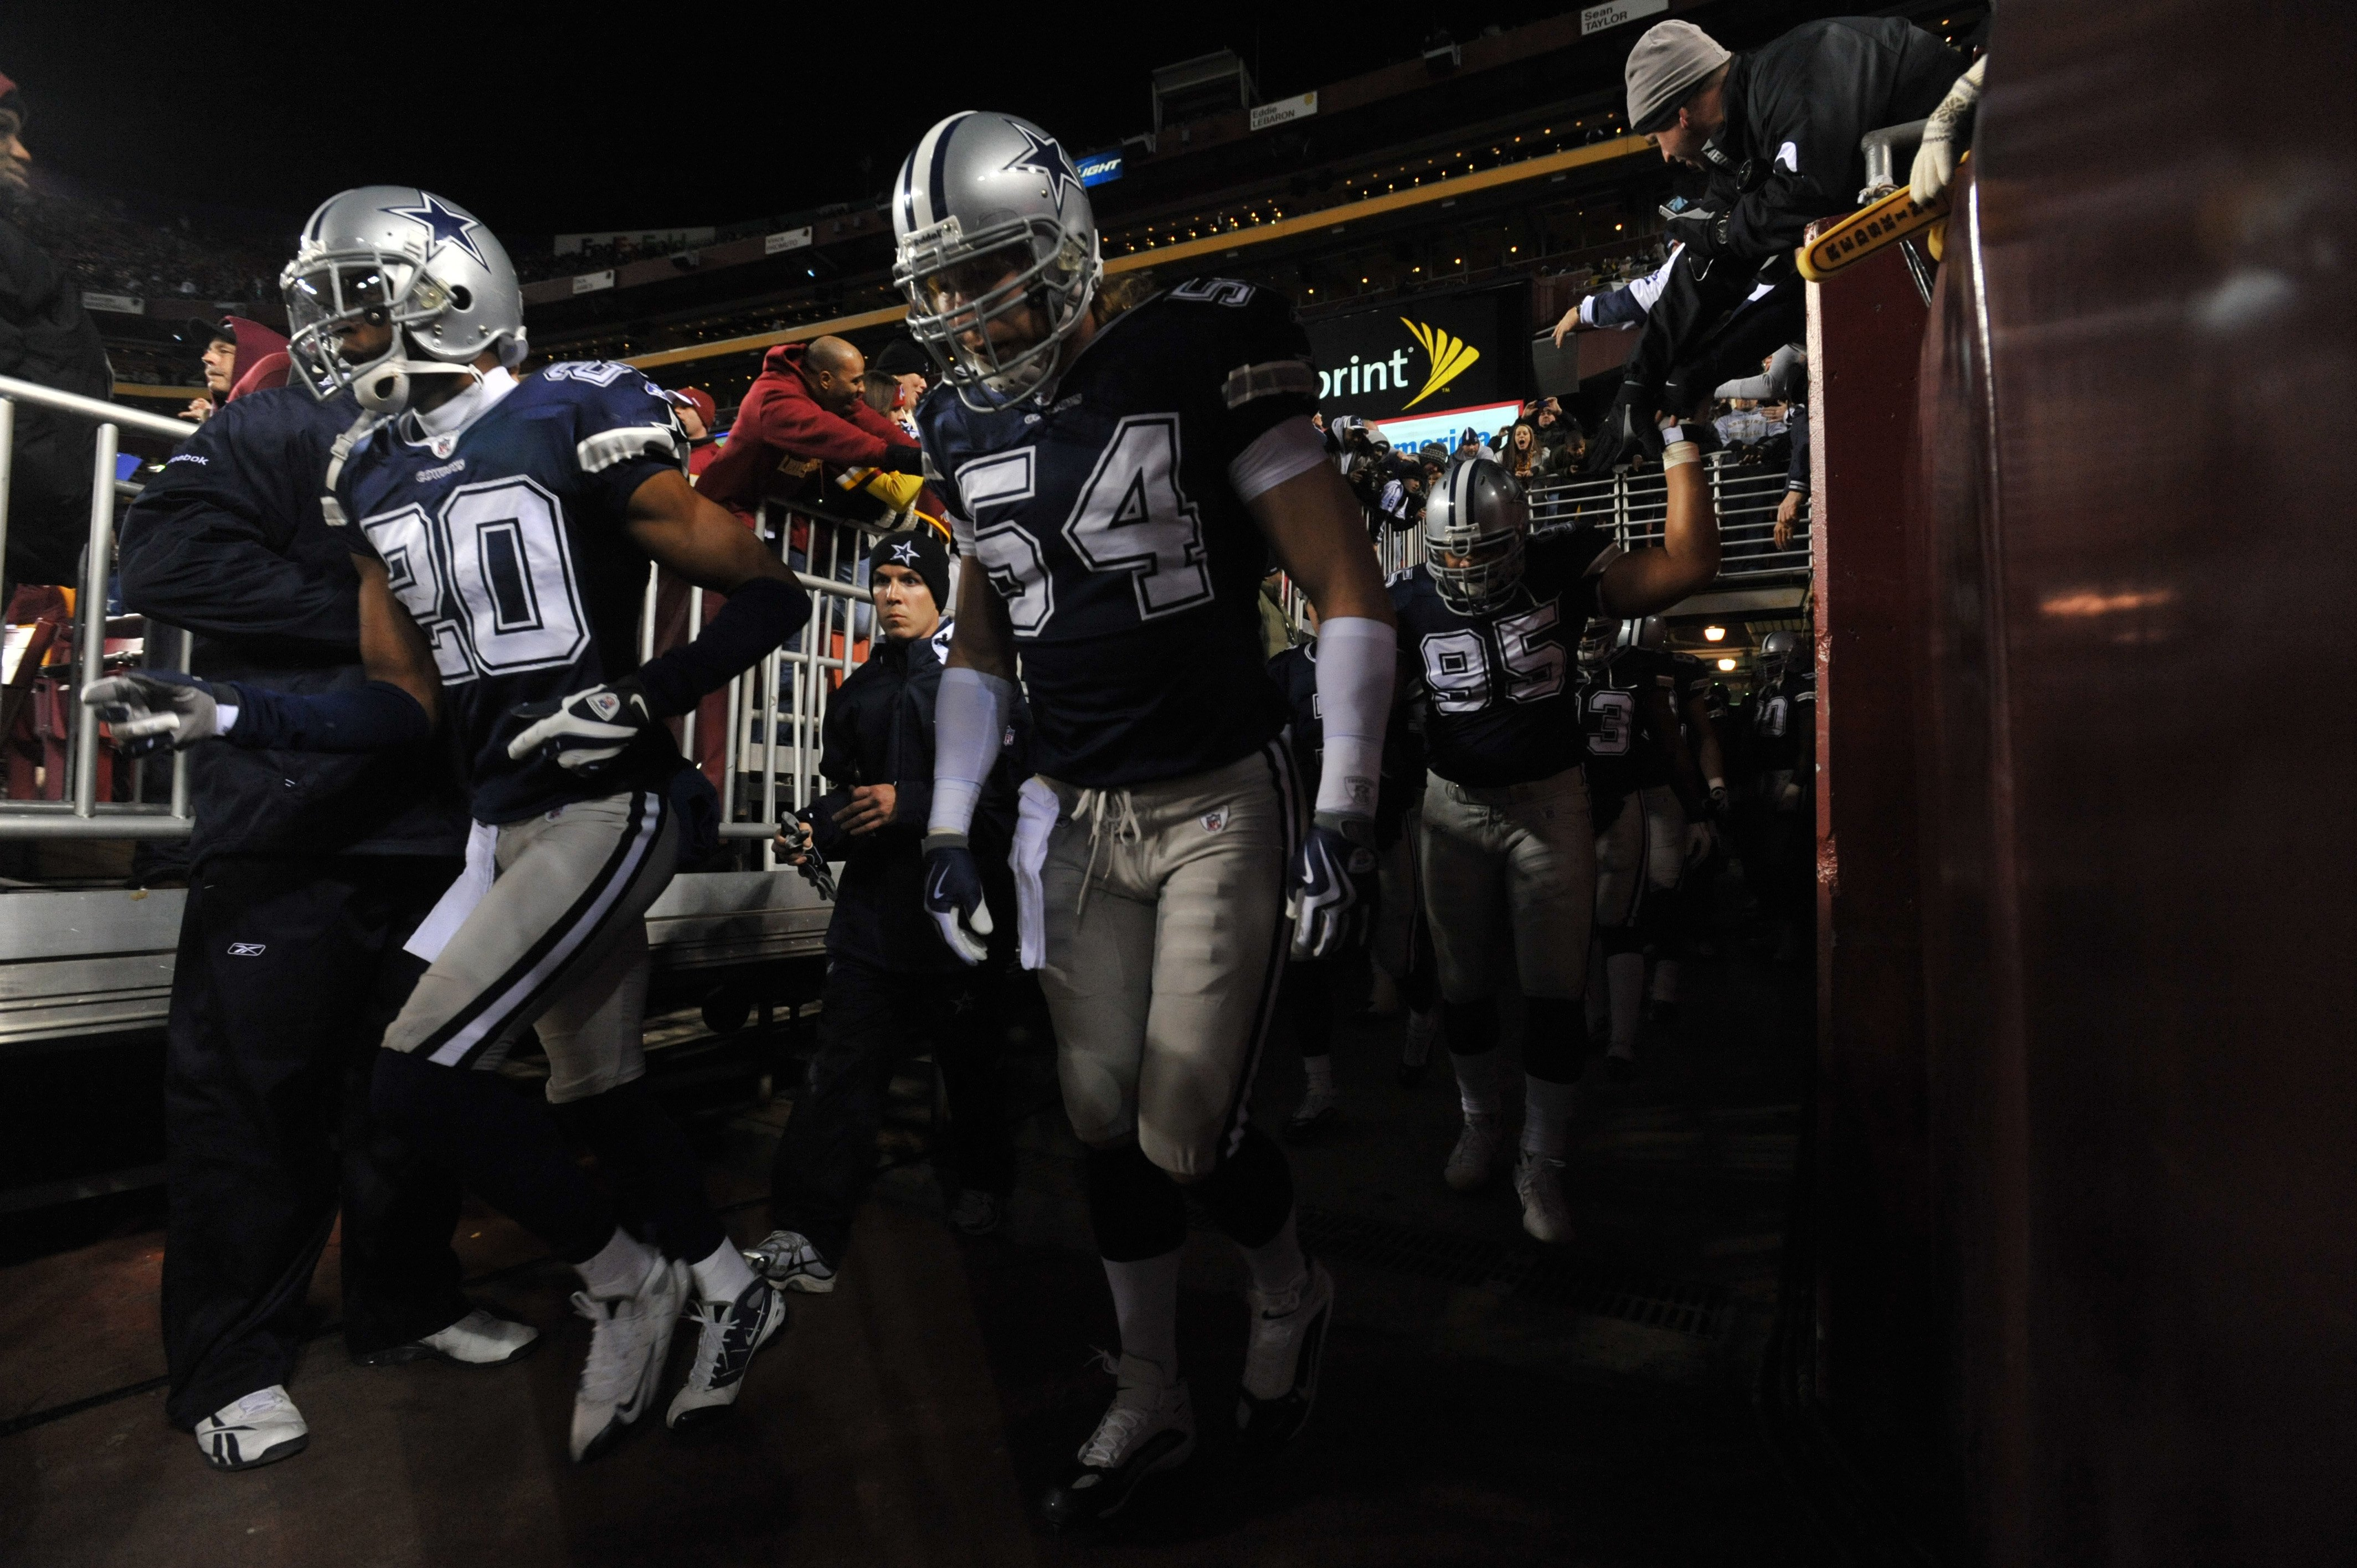 LANDOVER, MD - DECEMBER 27:  Bobby Carpenter #54 of the Dallas Cowboys prepares to run onto the field before the game against the Washington Redskins at FedExField on December 27, 2009 in Landover, Maryland. The Cowboys defeated the Redskins 17-0. (Photo